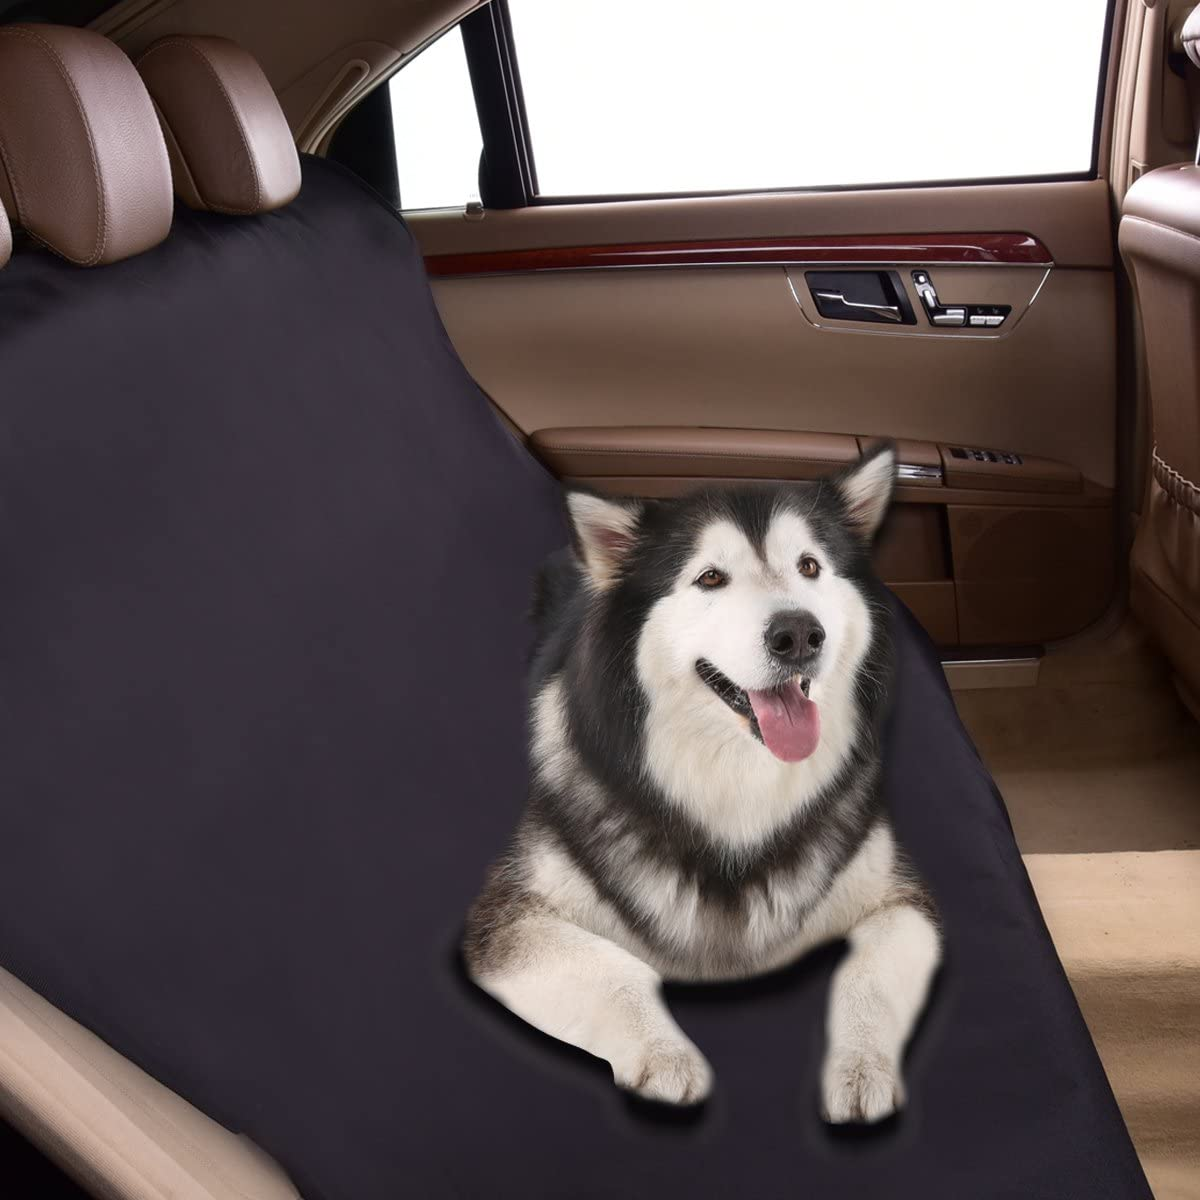 CAR PASS Wateproof Car Bench Seat Covers for Dogs,Pets,Classical Black Universal fit for Trucks,sedans,Suvs,Vans